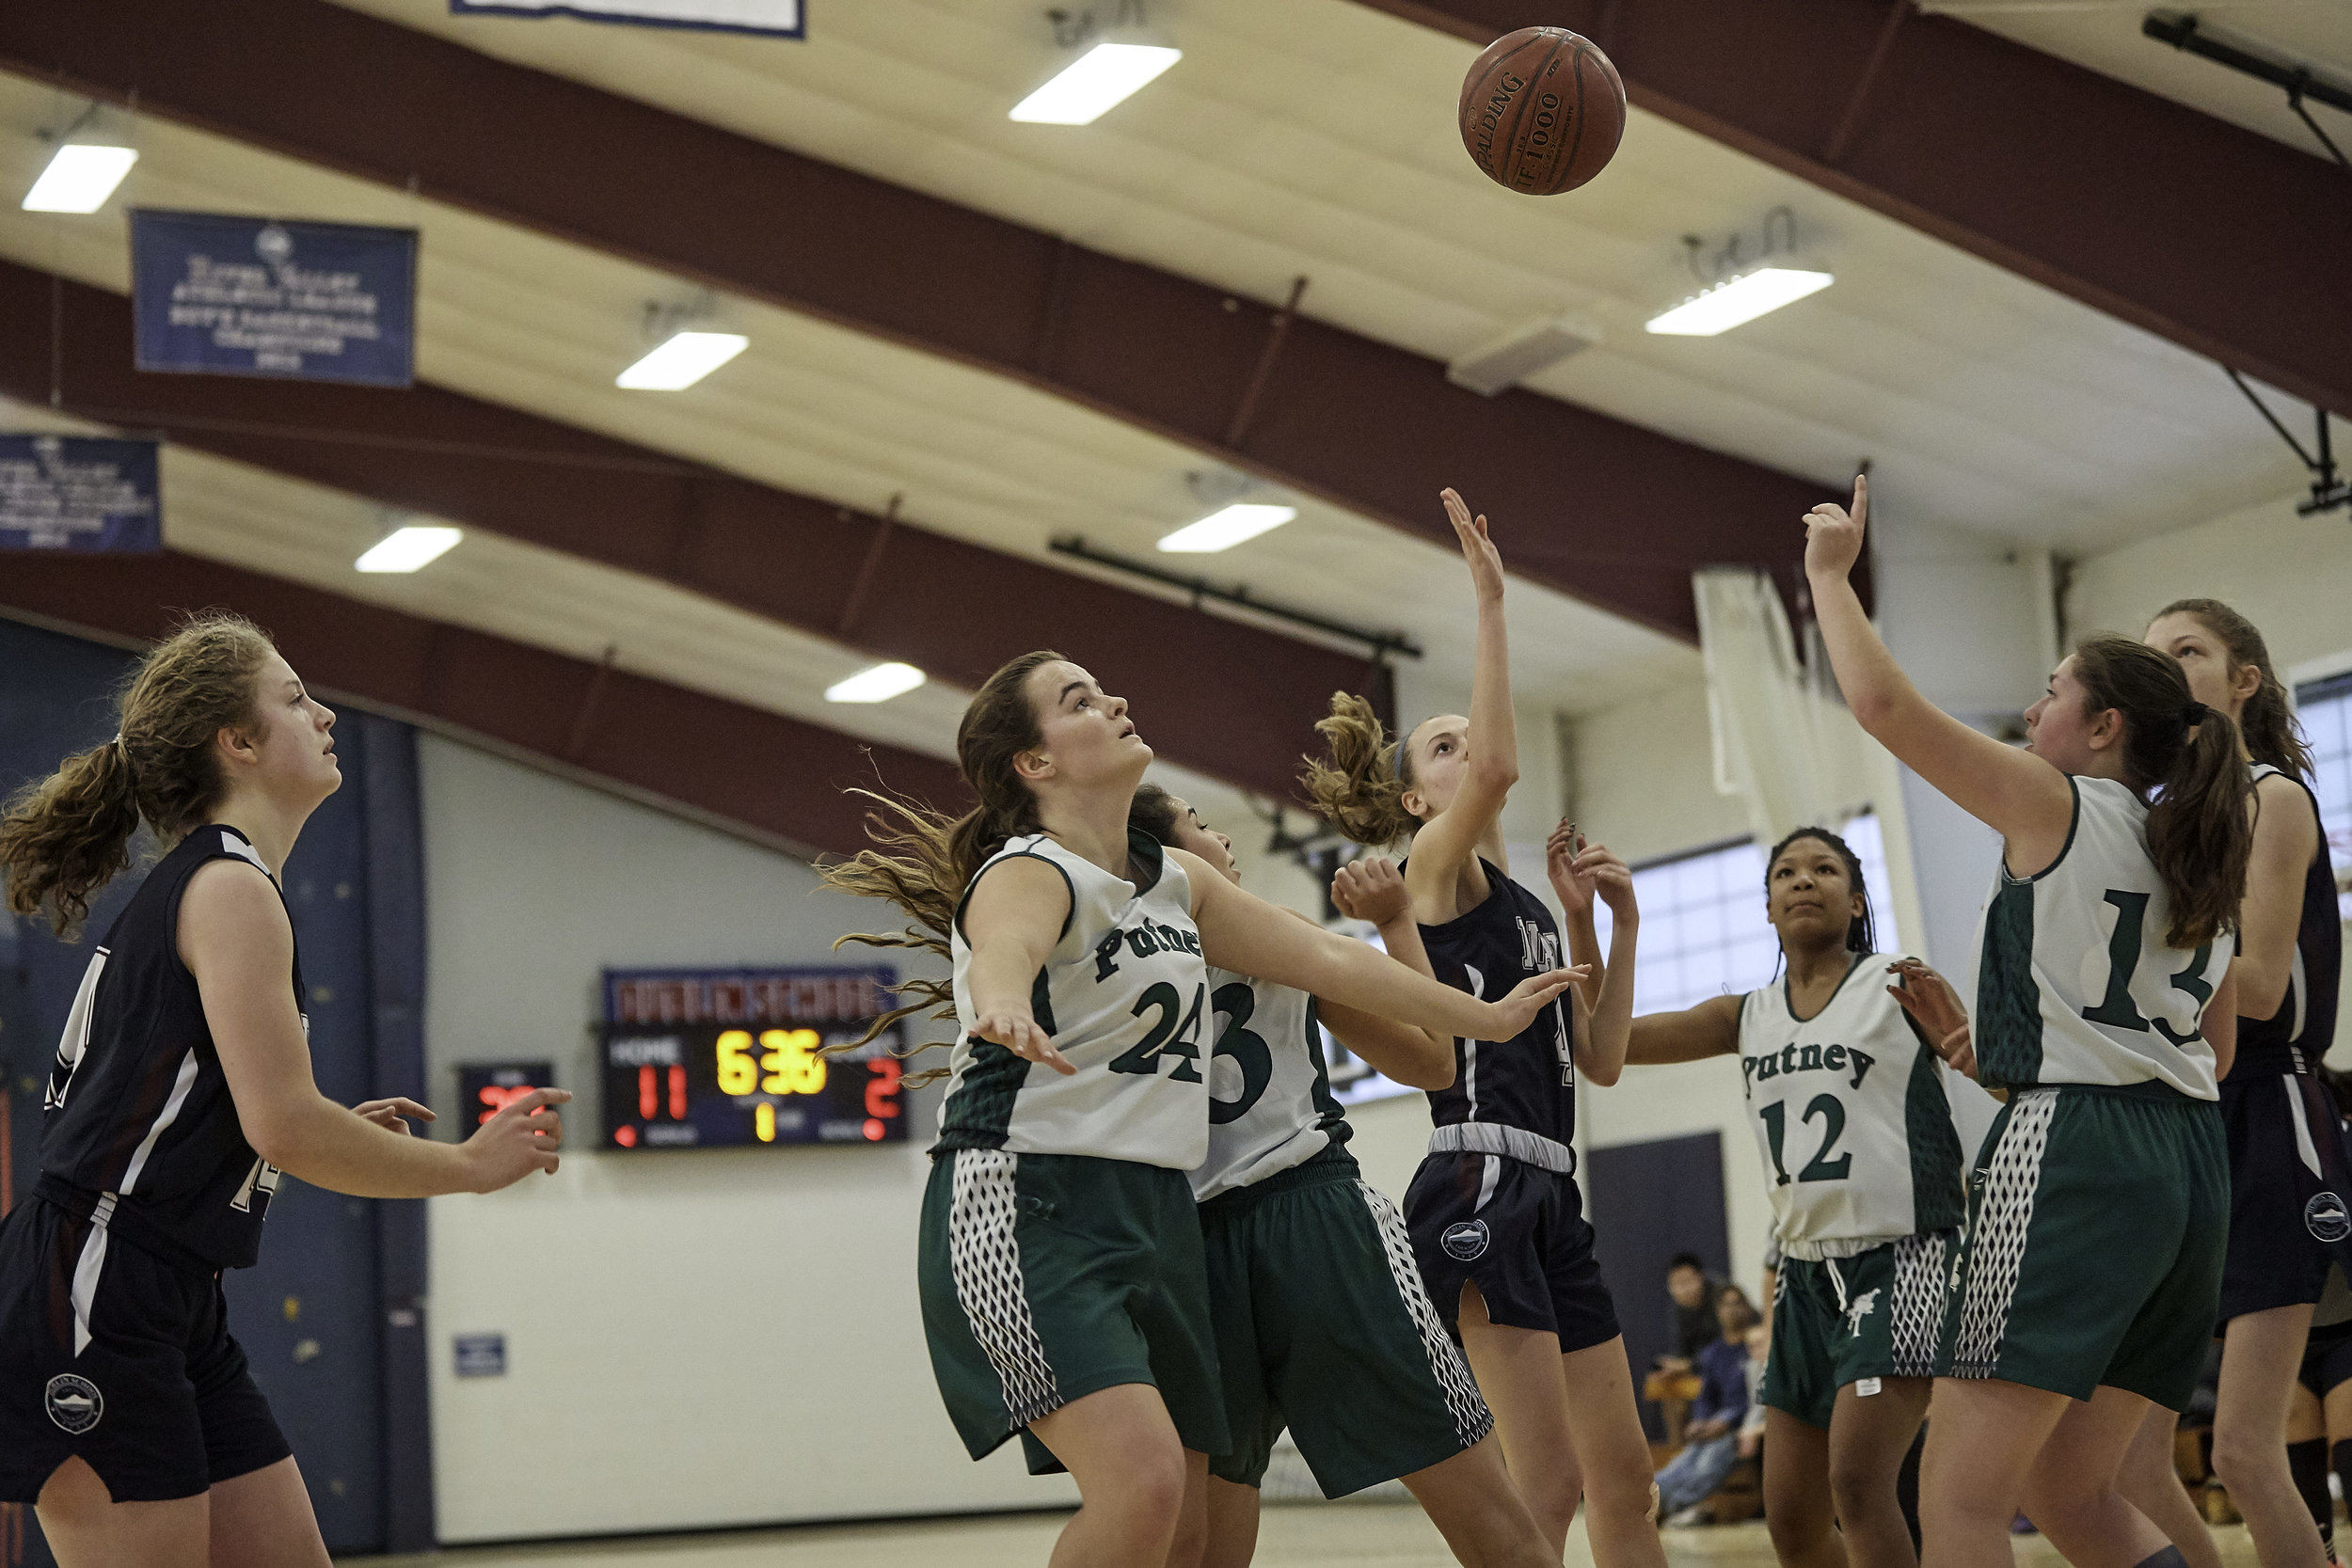 Basketball vs Putney School, February 9, 2019 - 167261.jpg